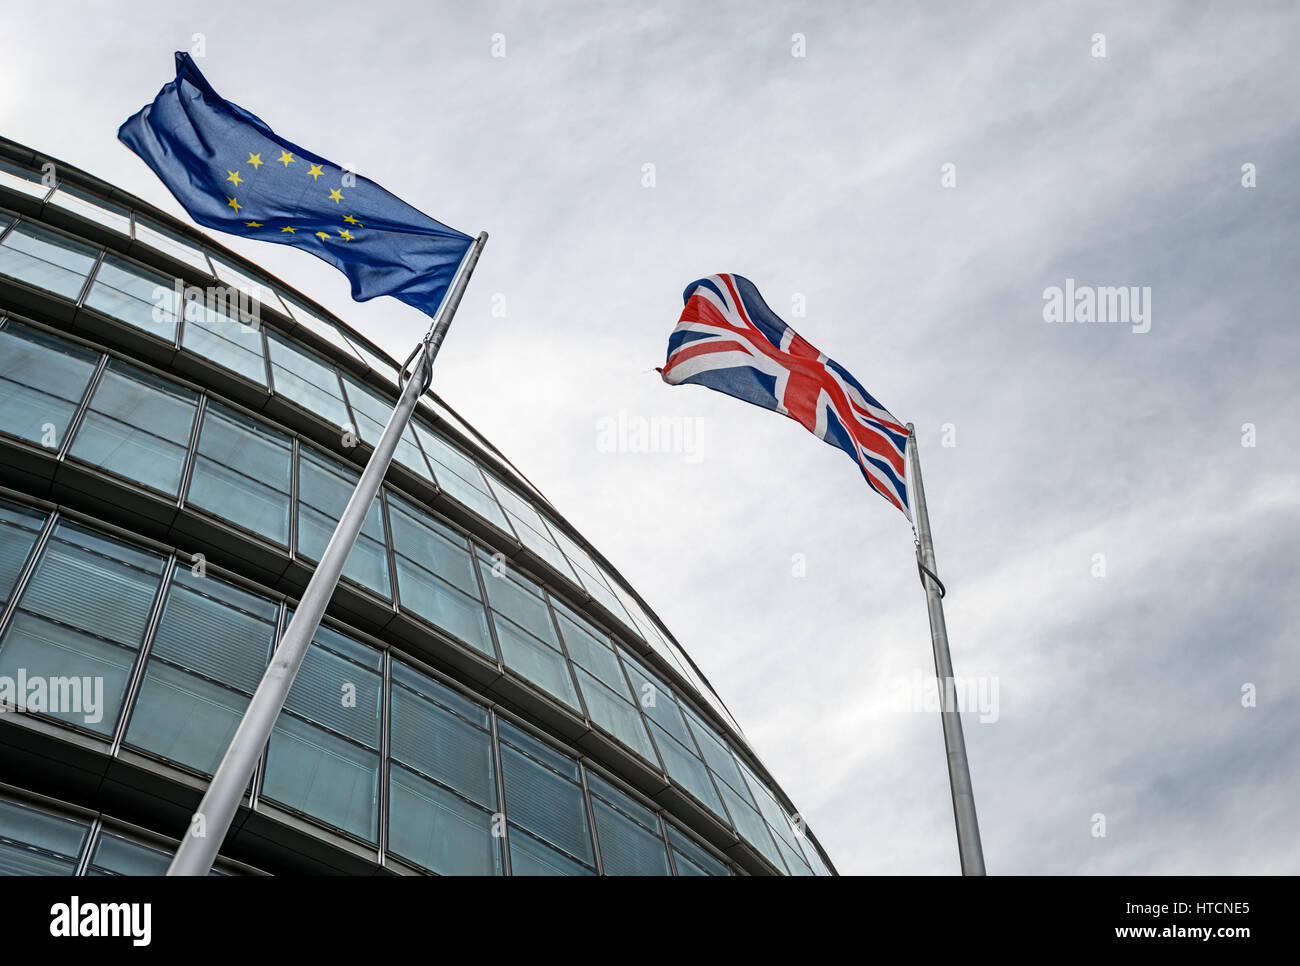 Looking up at EU and UK flags blowing in the wind outside City Hall, London Stock Photo